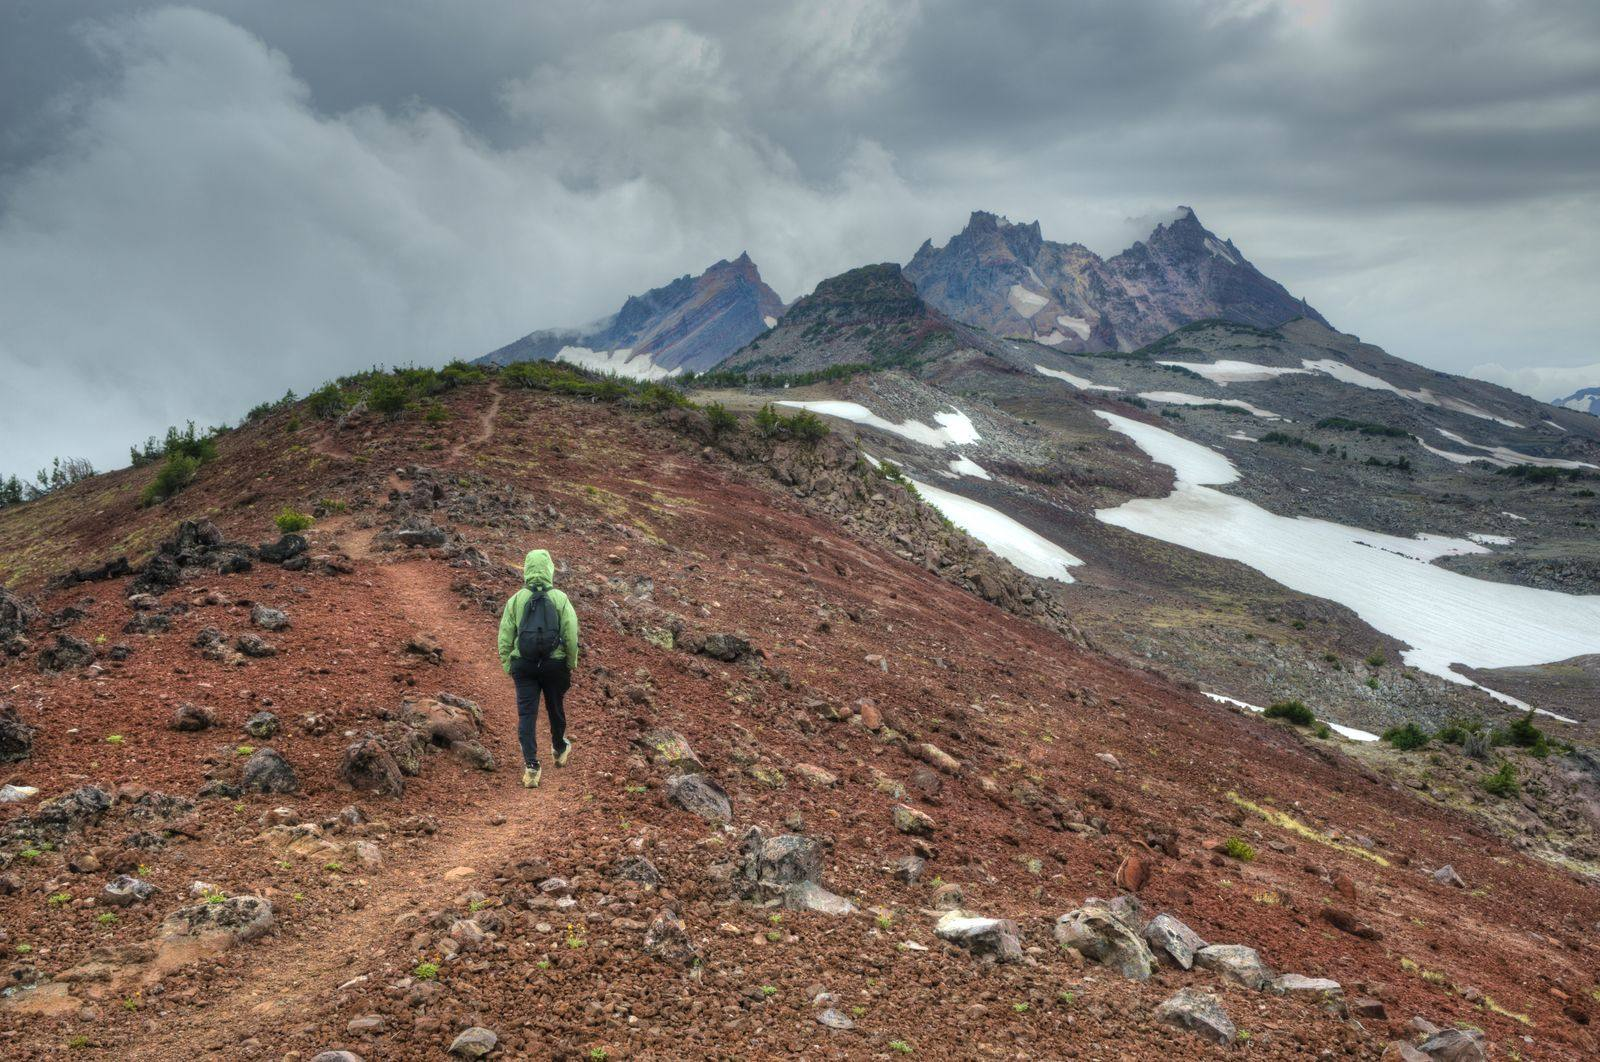 40+ Hiking Gift Ideas for Those Who Love Getting Up High!